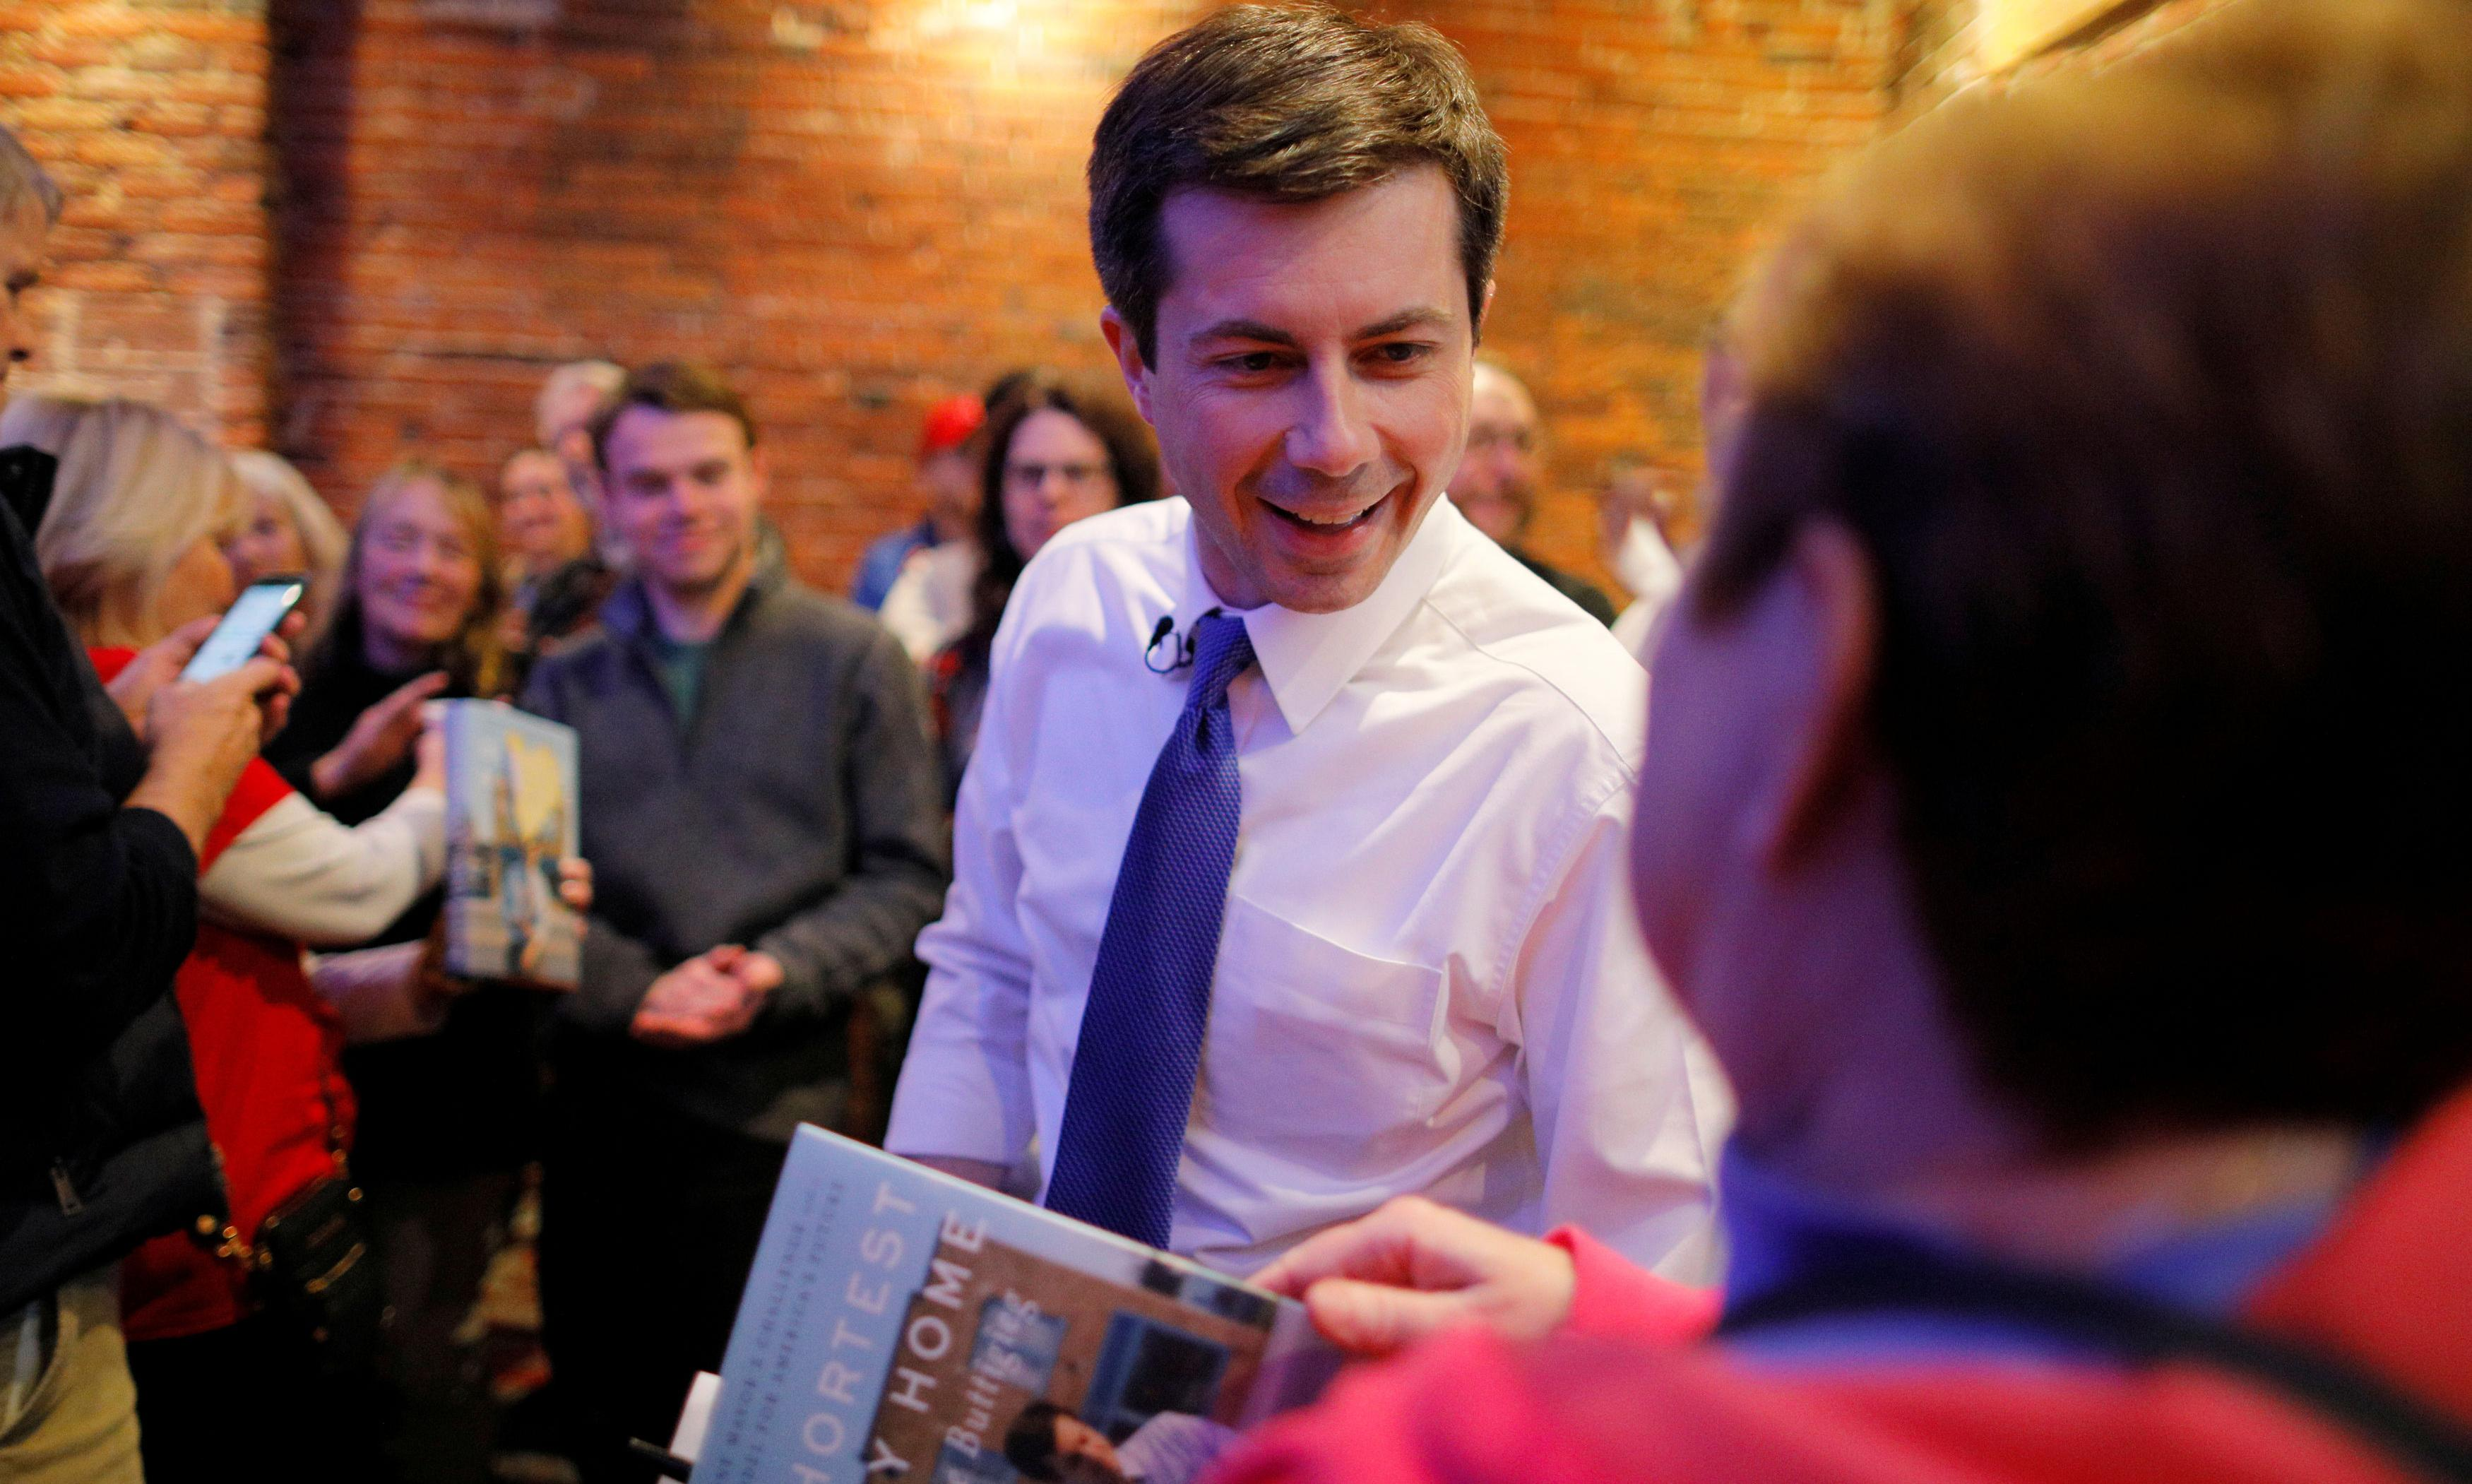 Shortest Way Home review: Pete Buttigieg as president in waiting